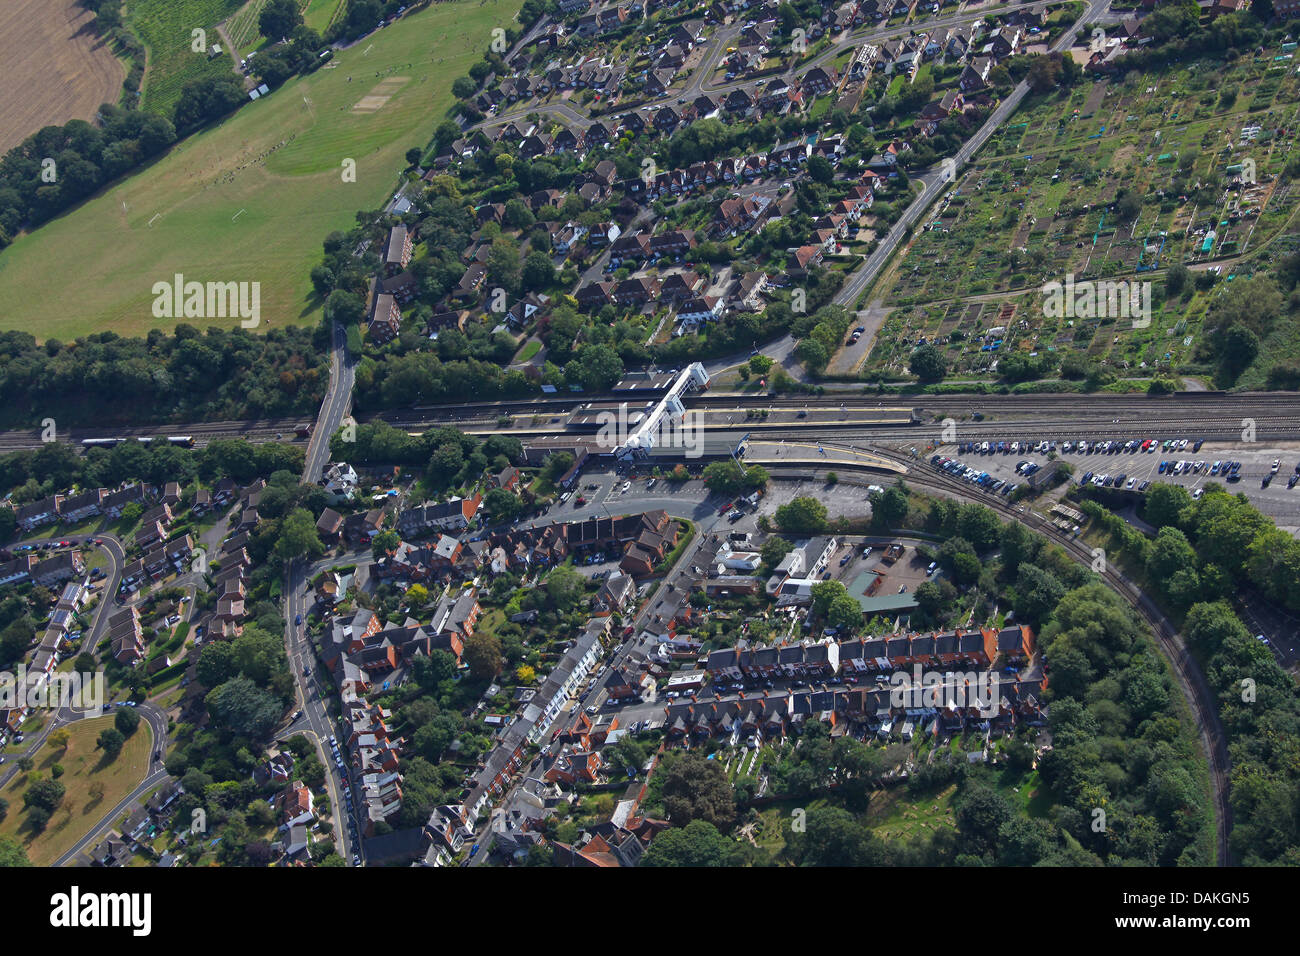 An aerial view of Twyford railway station showing the Branch line going off to Henley on Thames. - Stock Image